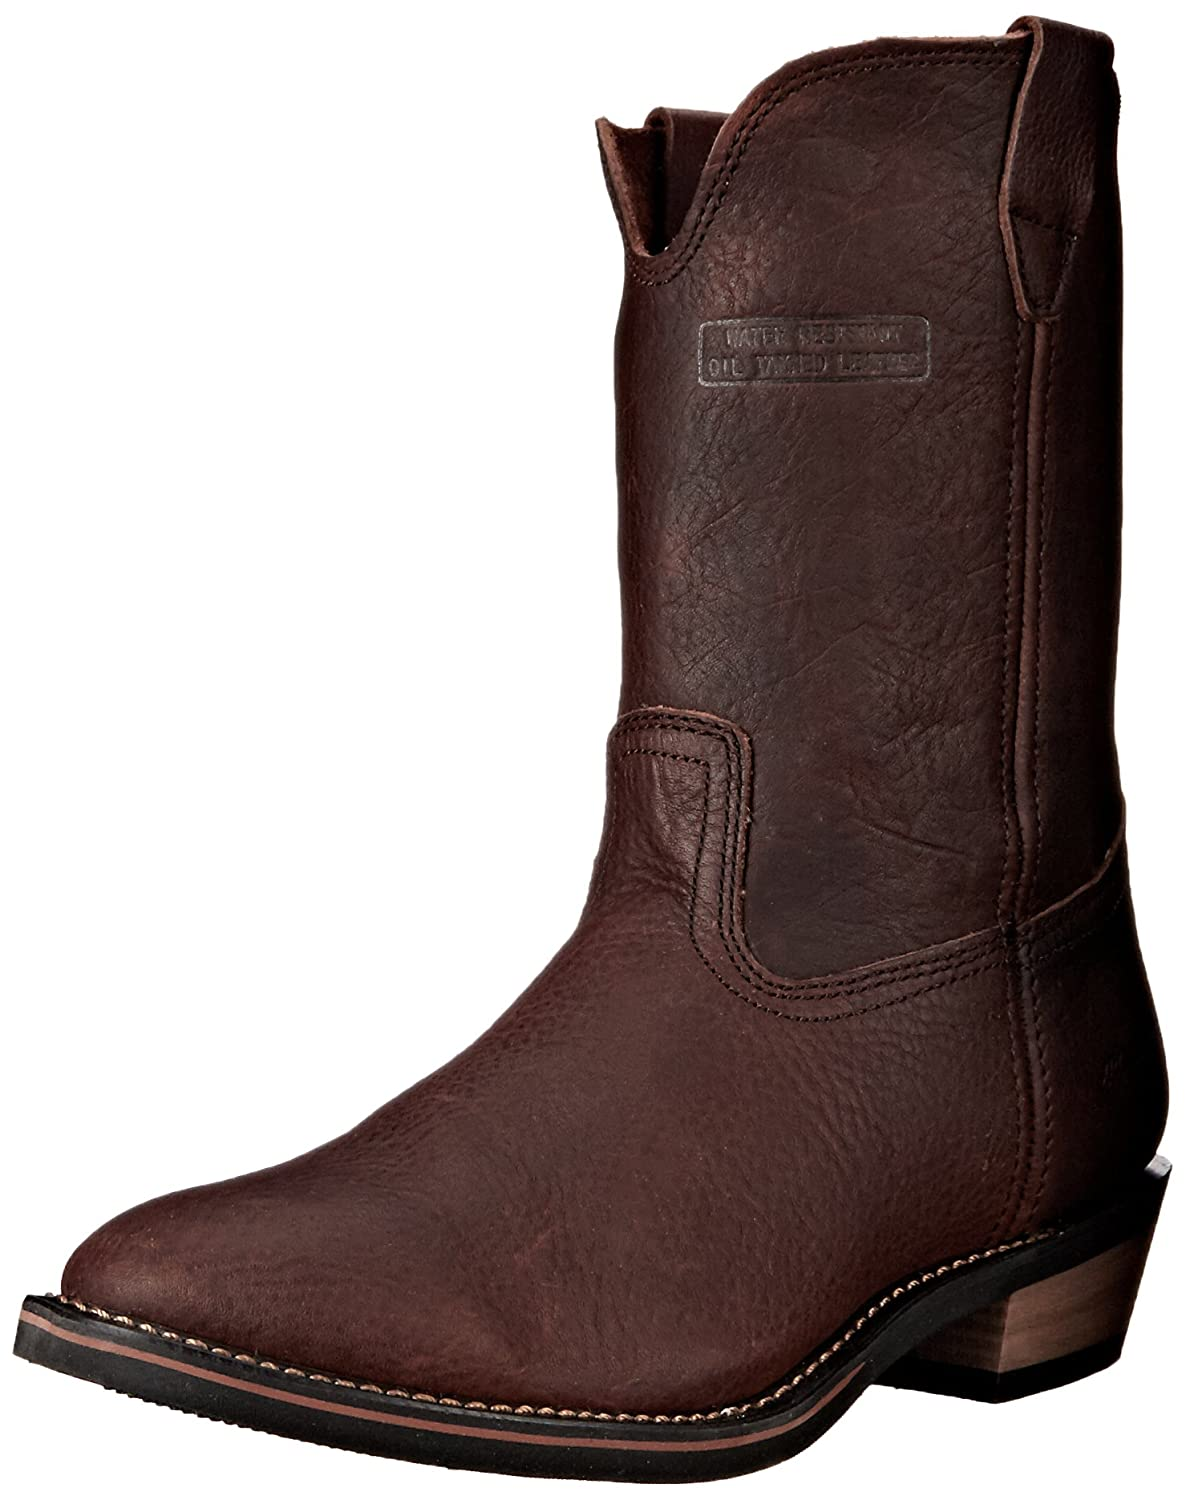 Adtec Men's 12 inch Ranch Wellington Boot B003RQ3I62 11.5 D(M) US|Reddish